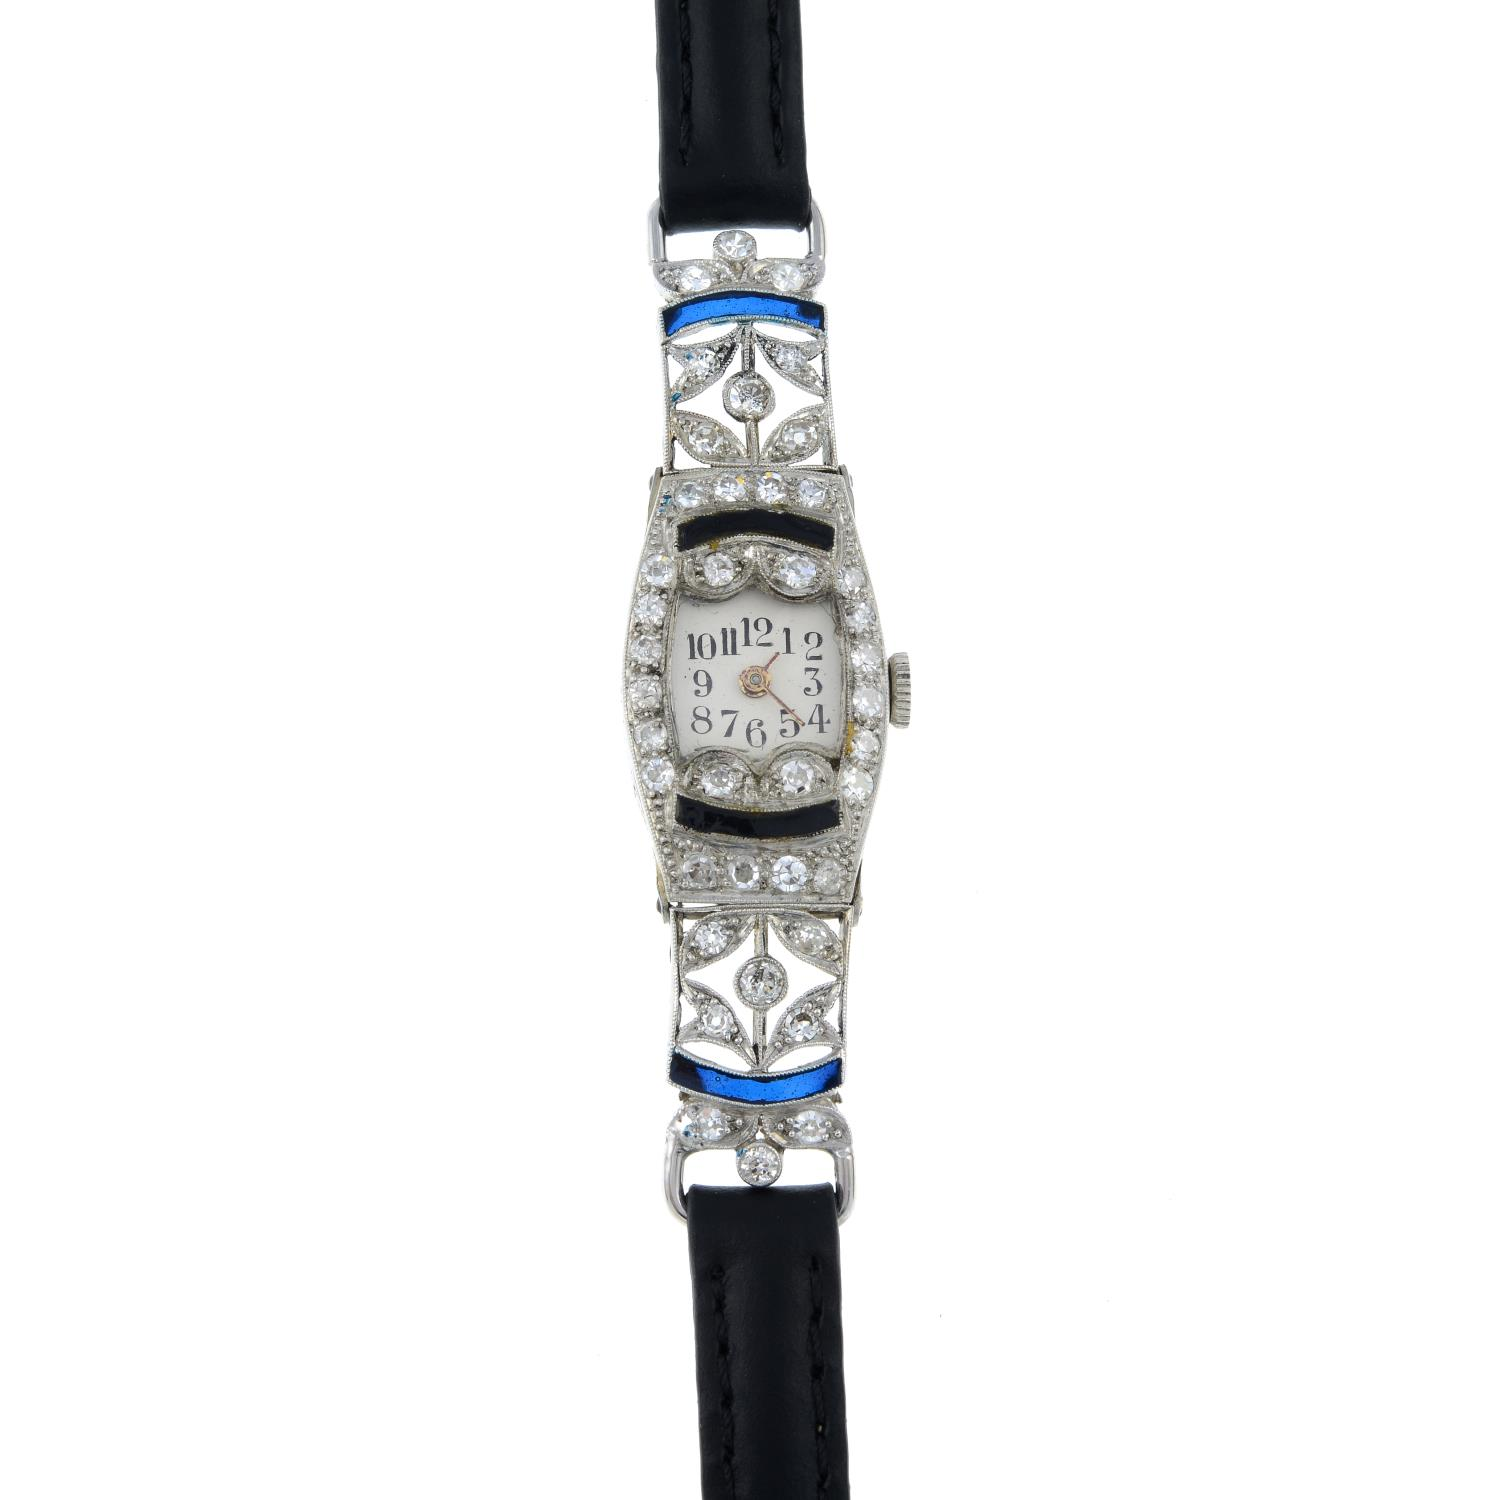 A mid 20th century platinum enamel and diamond cocktail watch, with later leather strap. - Image 2 of 4